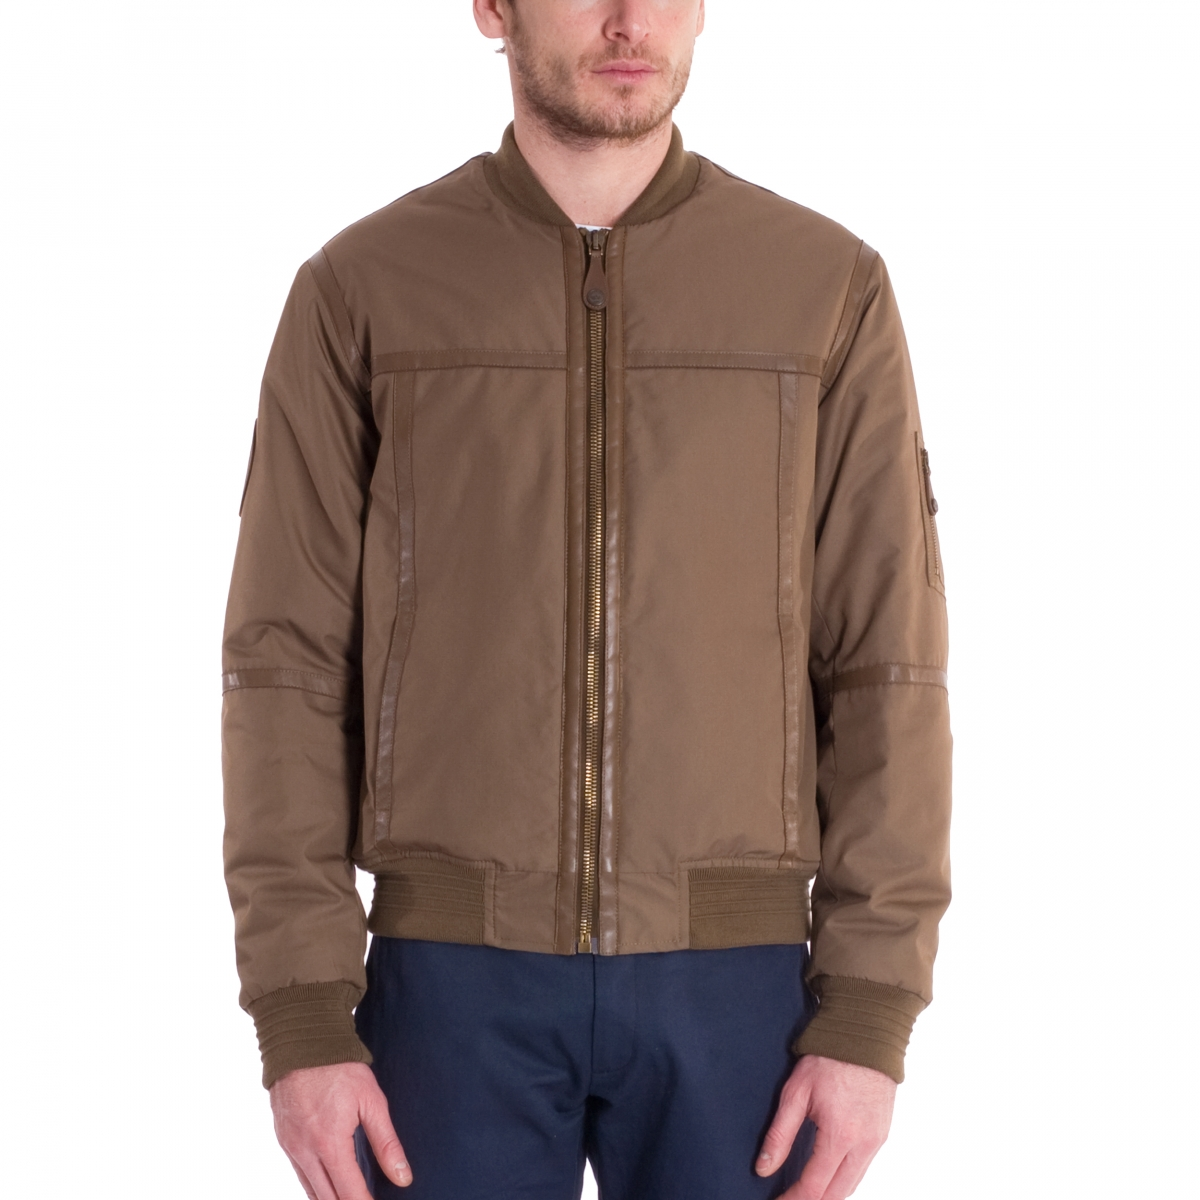 Le bomber aviateur en cuir made in France vue de face